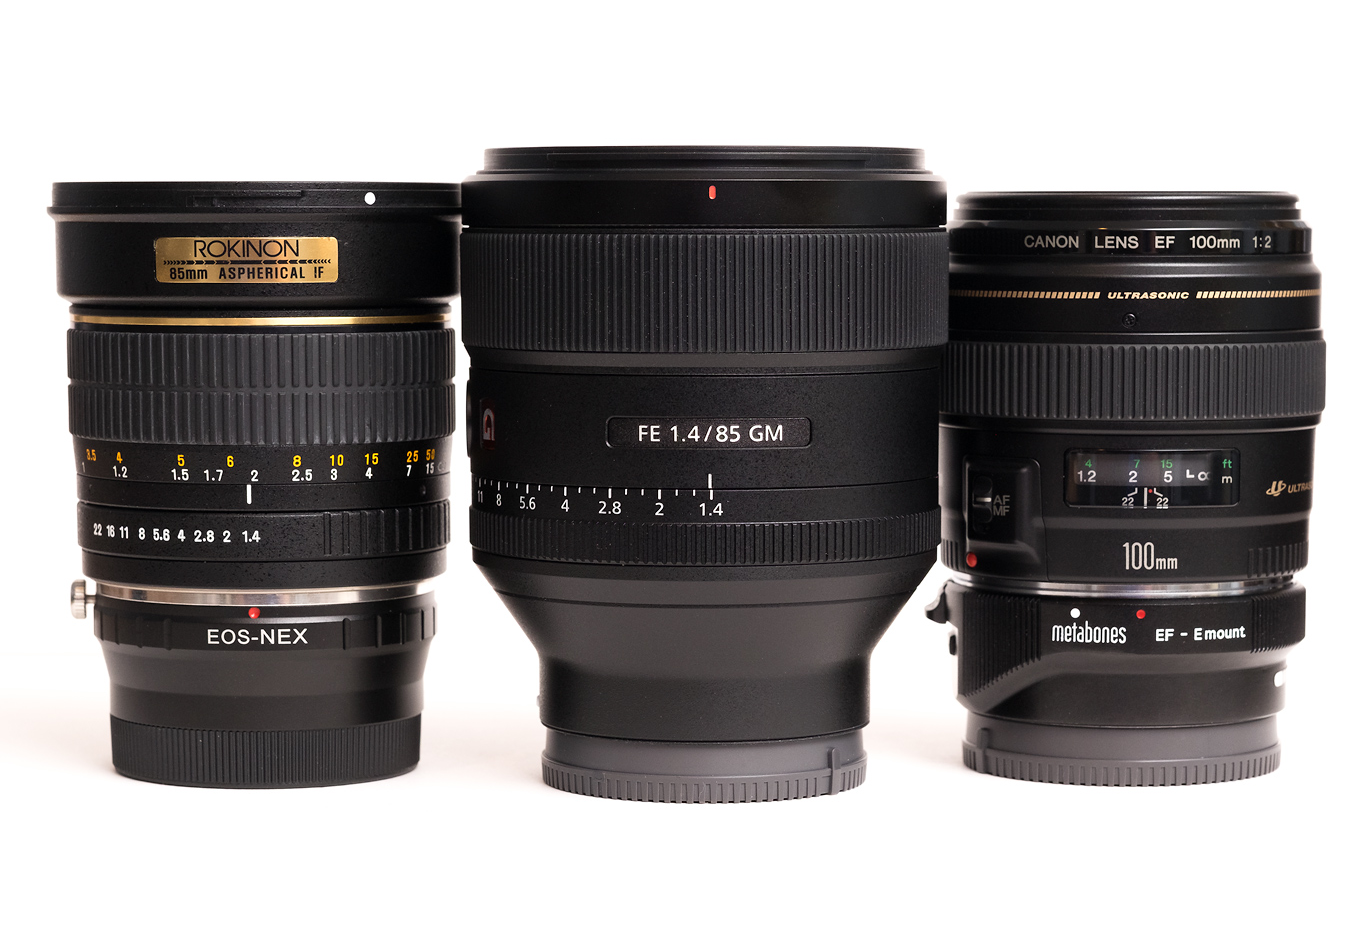 Sony 85mm F 1 4 Gm Vs Rokinon 85mm F 1 4 Vs Canon 100mm